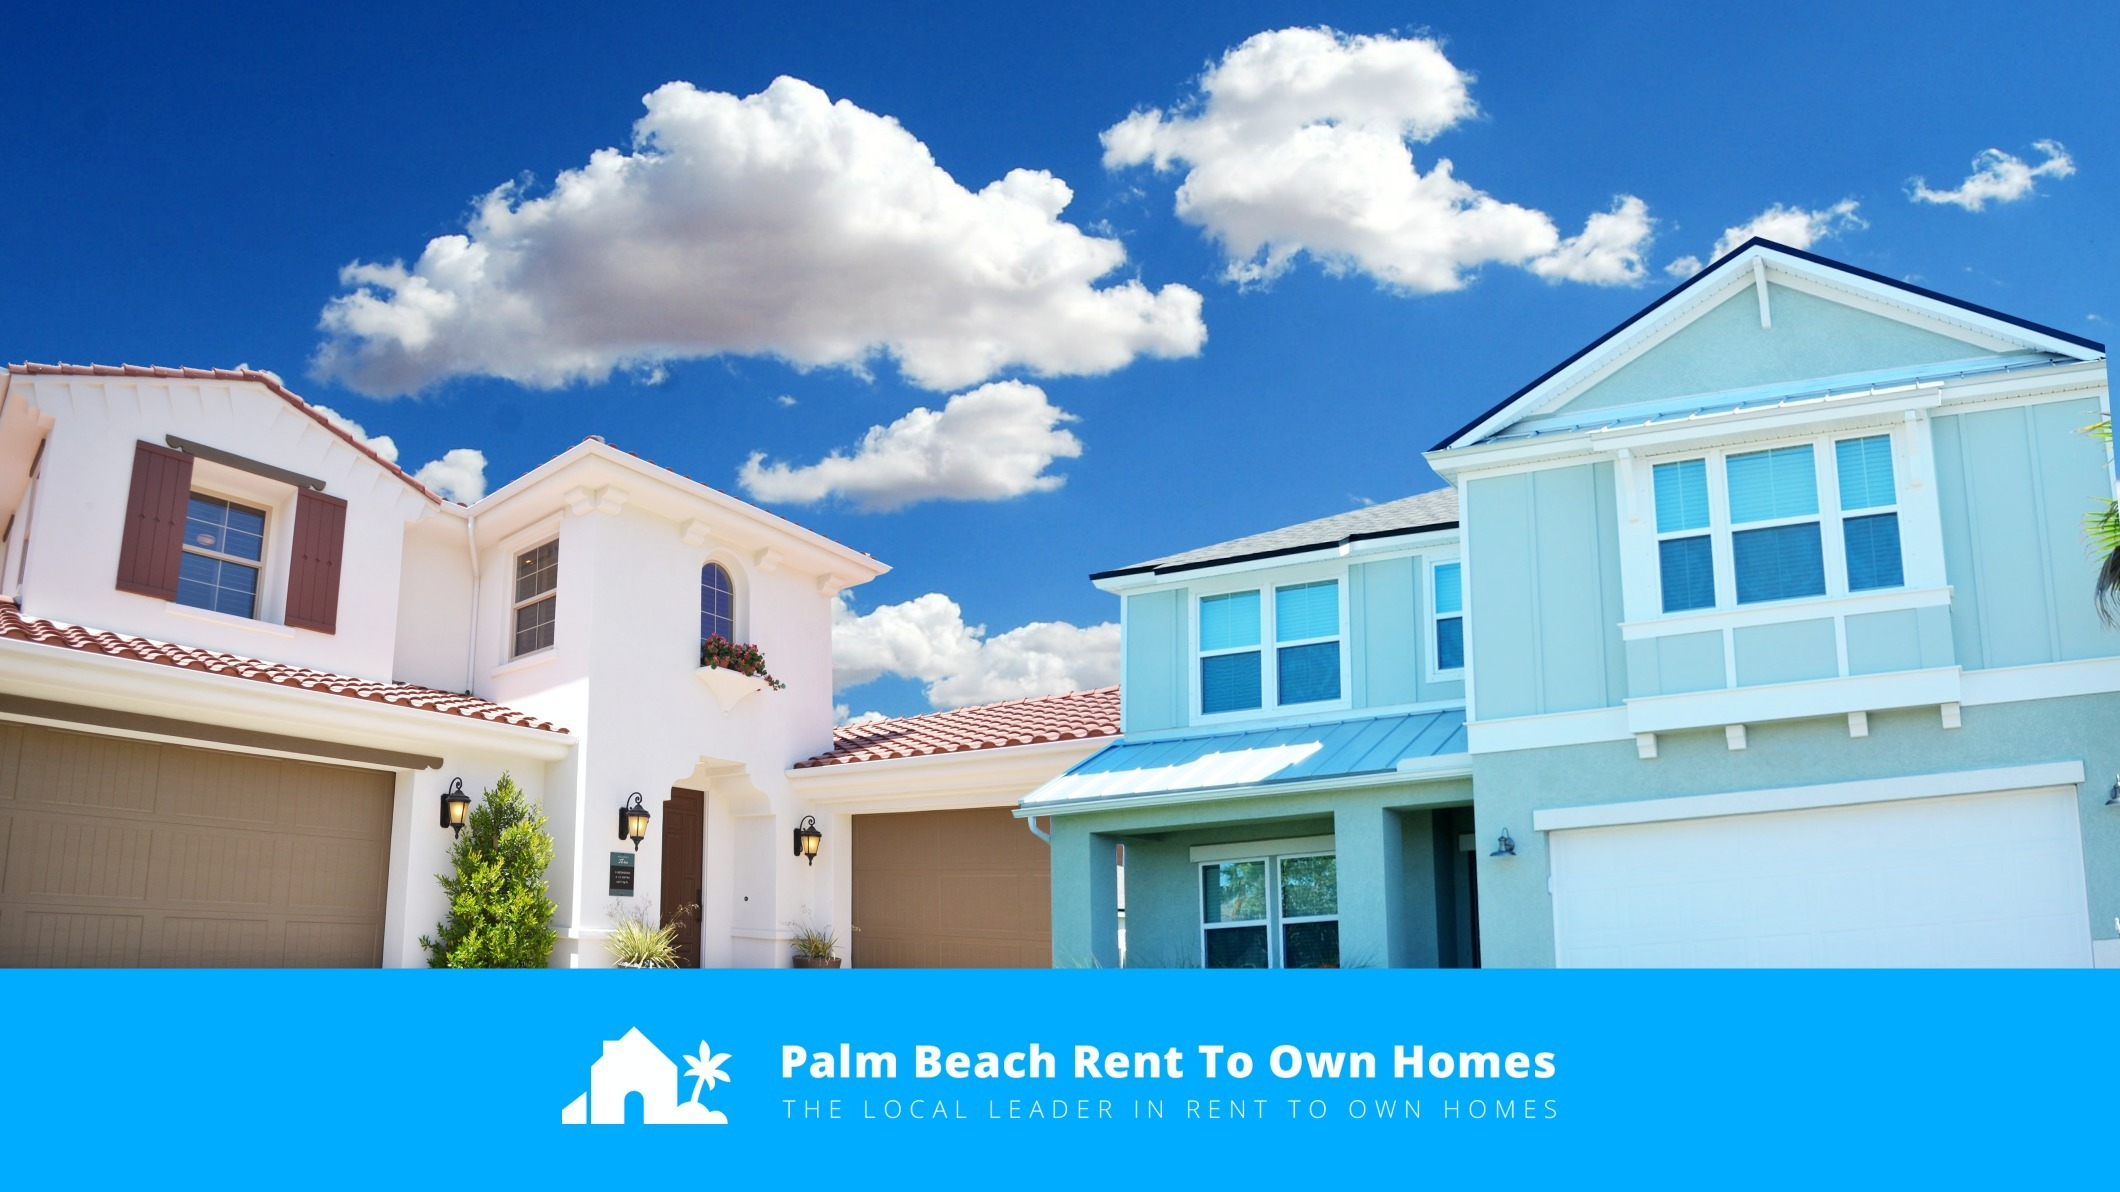 PalmBeachRentToOwnHomes (@palmbeachrenttoownhomes) Cover Image